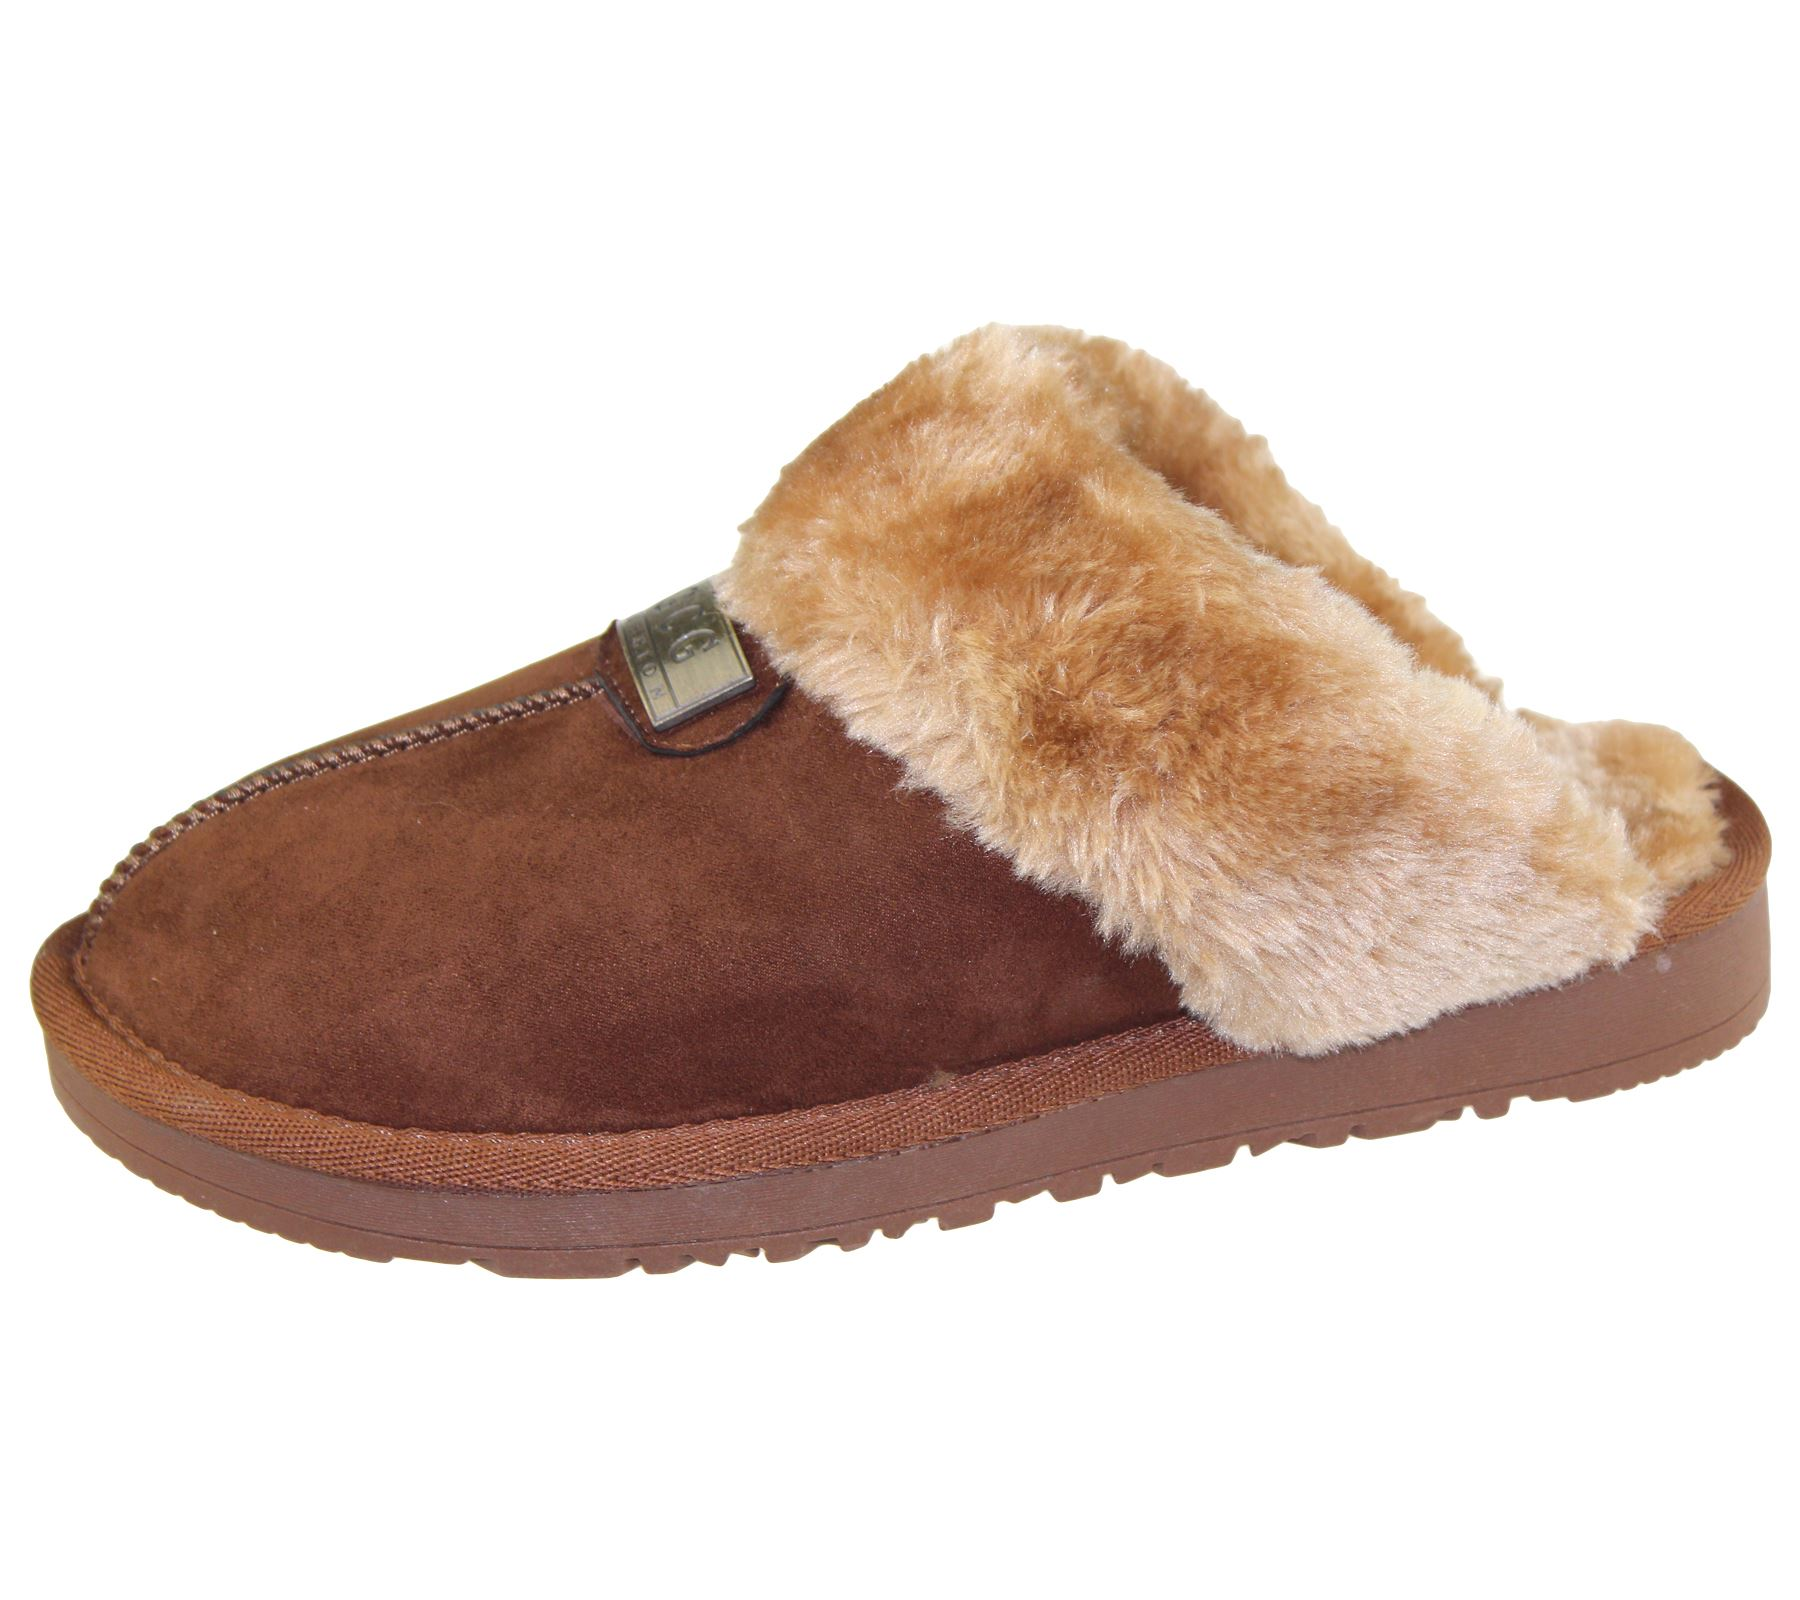 Womens-Fur-Lined-Slippers-Ladies-Mules-Non-Slip-Rubber-Sole-Shoes miniatura 19